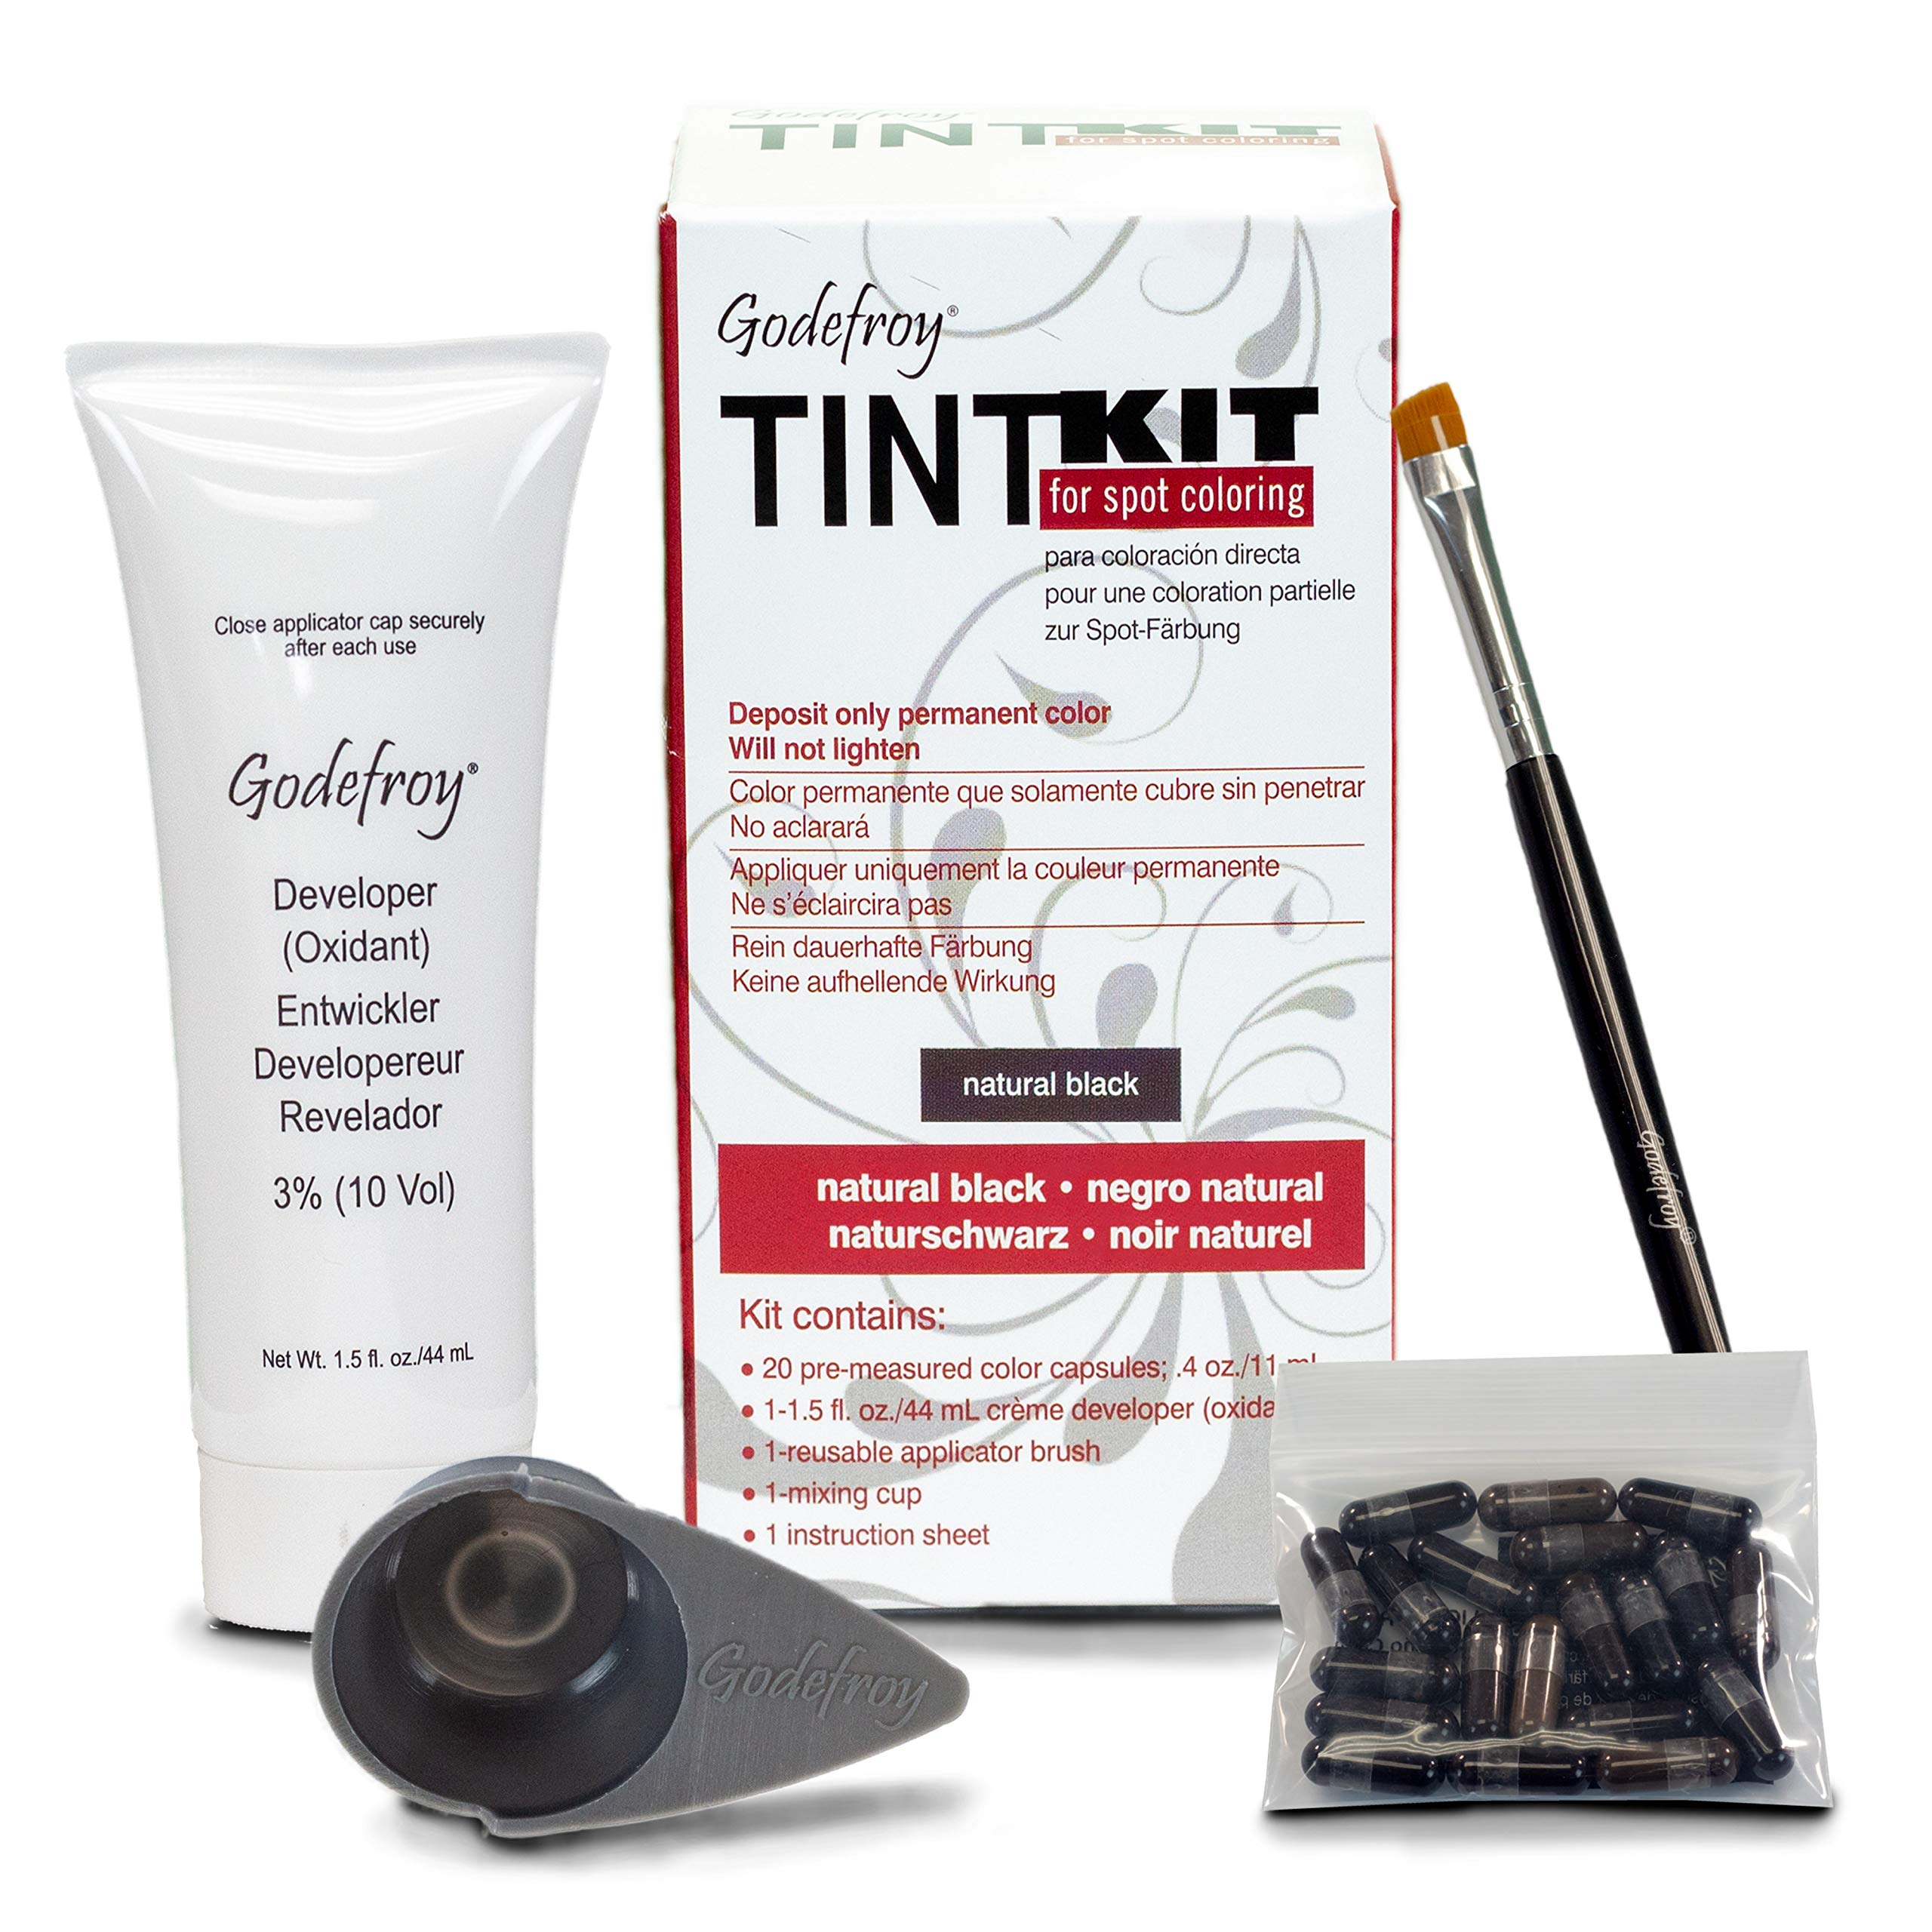 GHODEFROY Tint Kit, Natural Black, 20 pre-measured color capsules